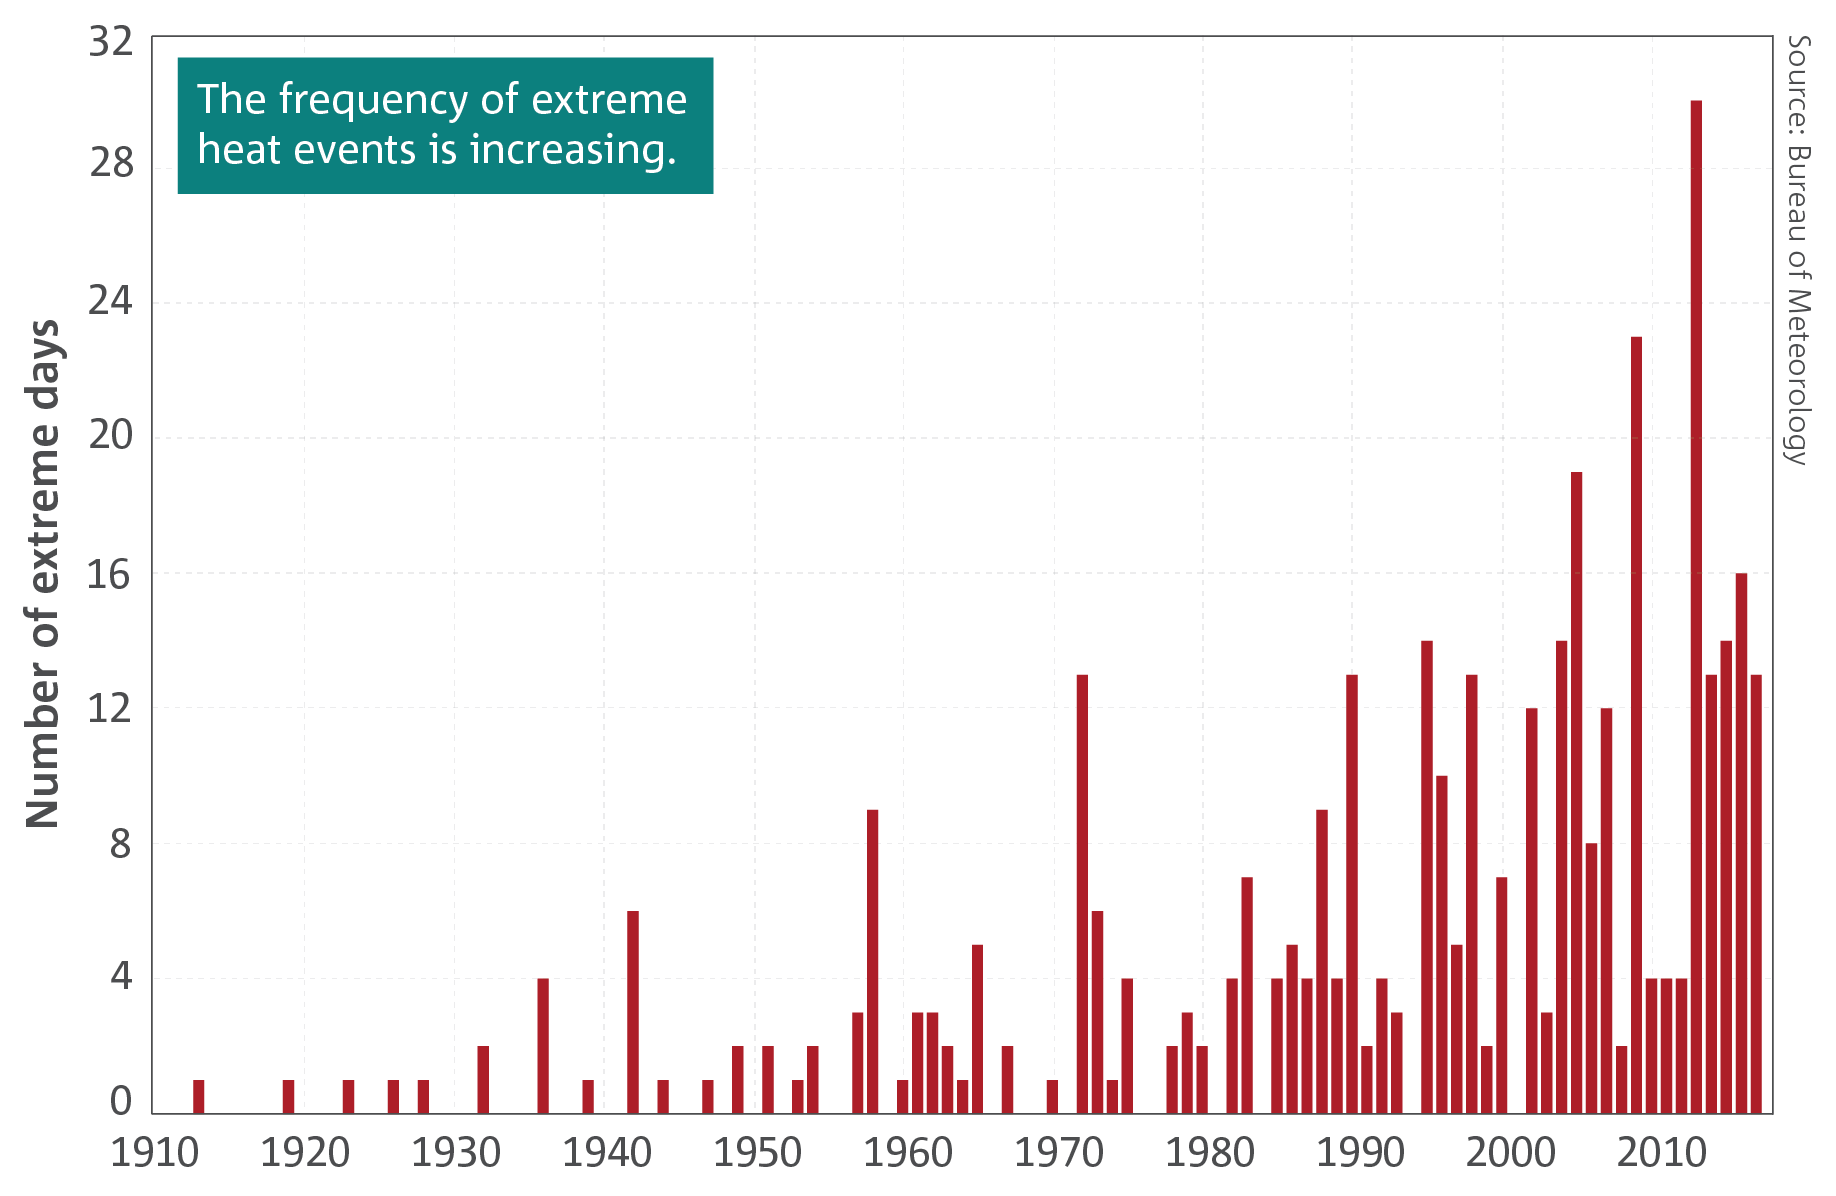 Bar graph showing the frequency of extreme heat events.